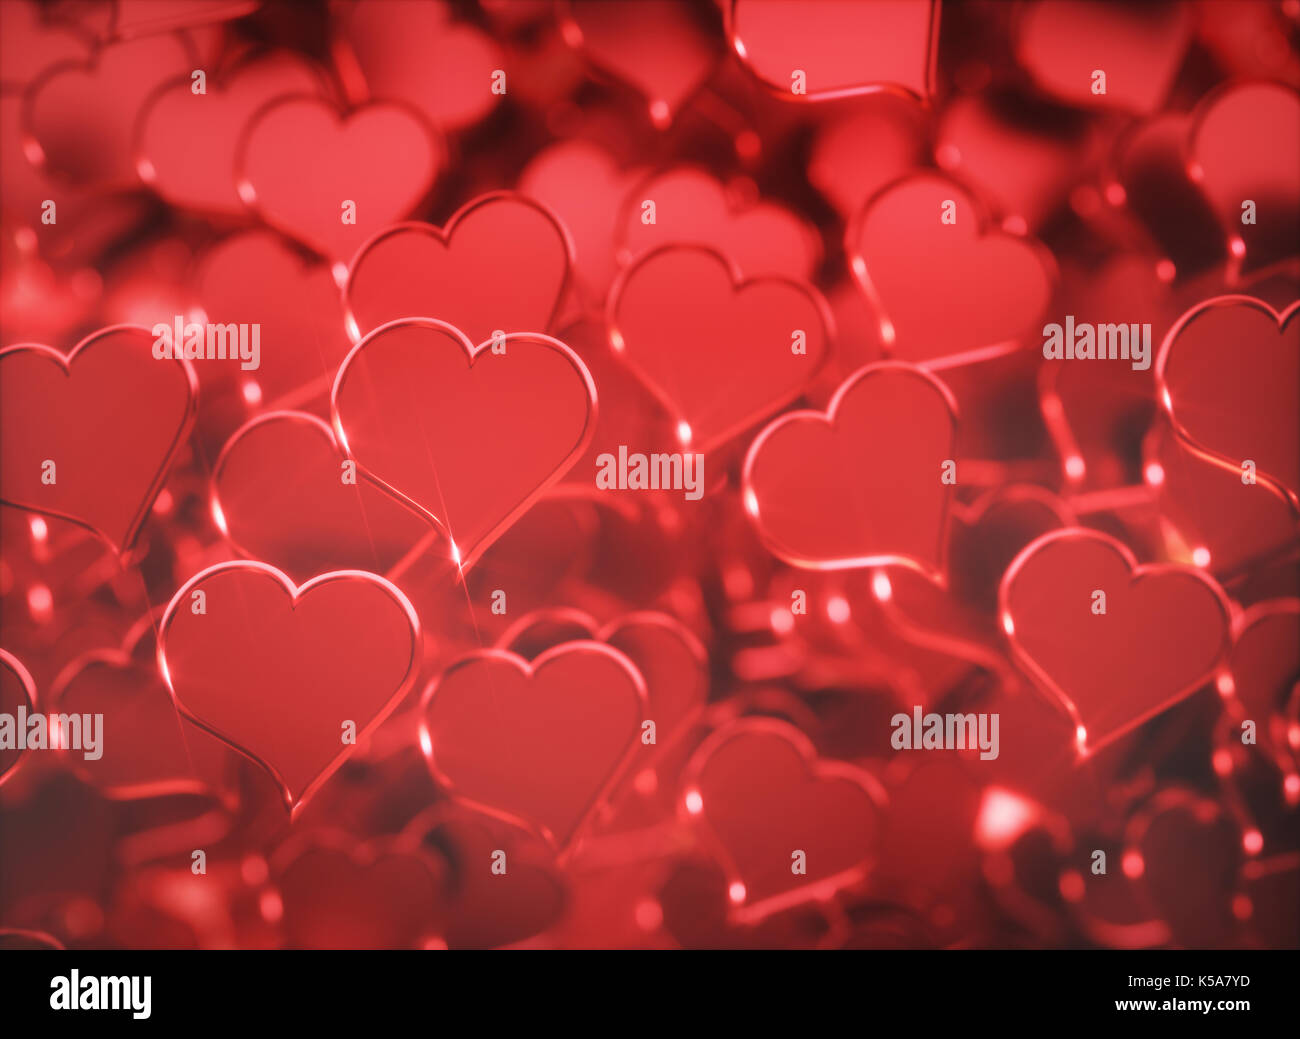 Red hearts, illustration. - Stock Image